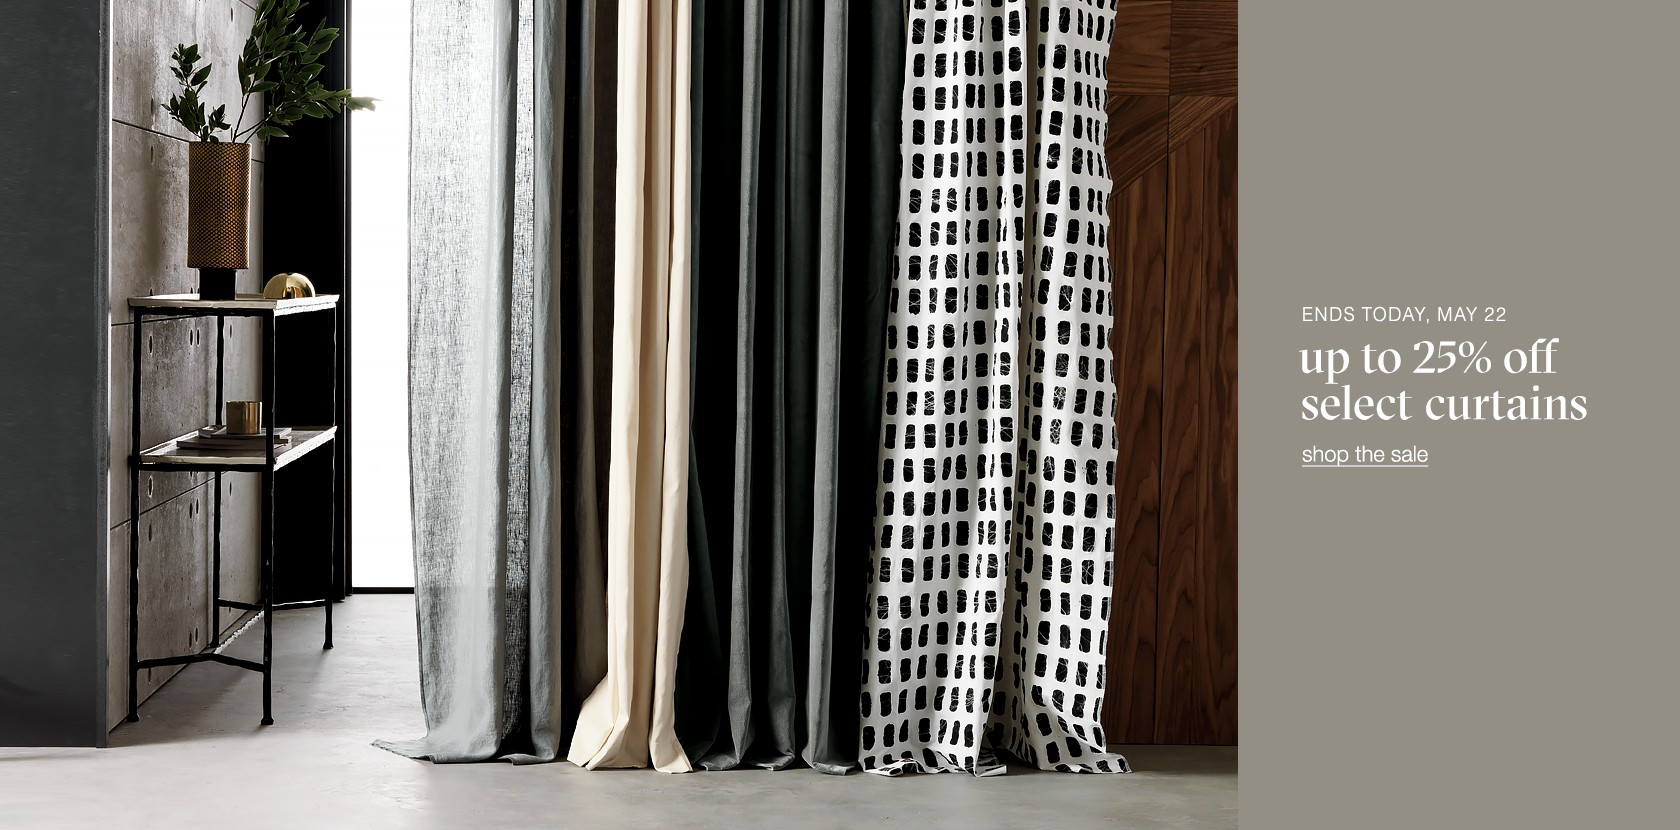 up to 25% off select curtains